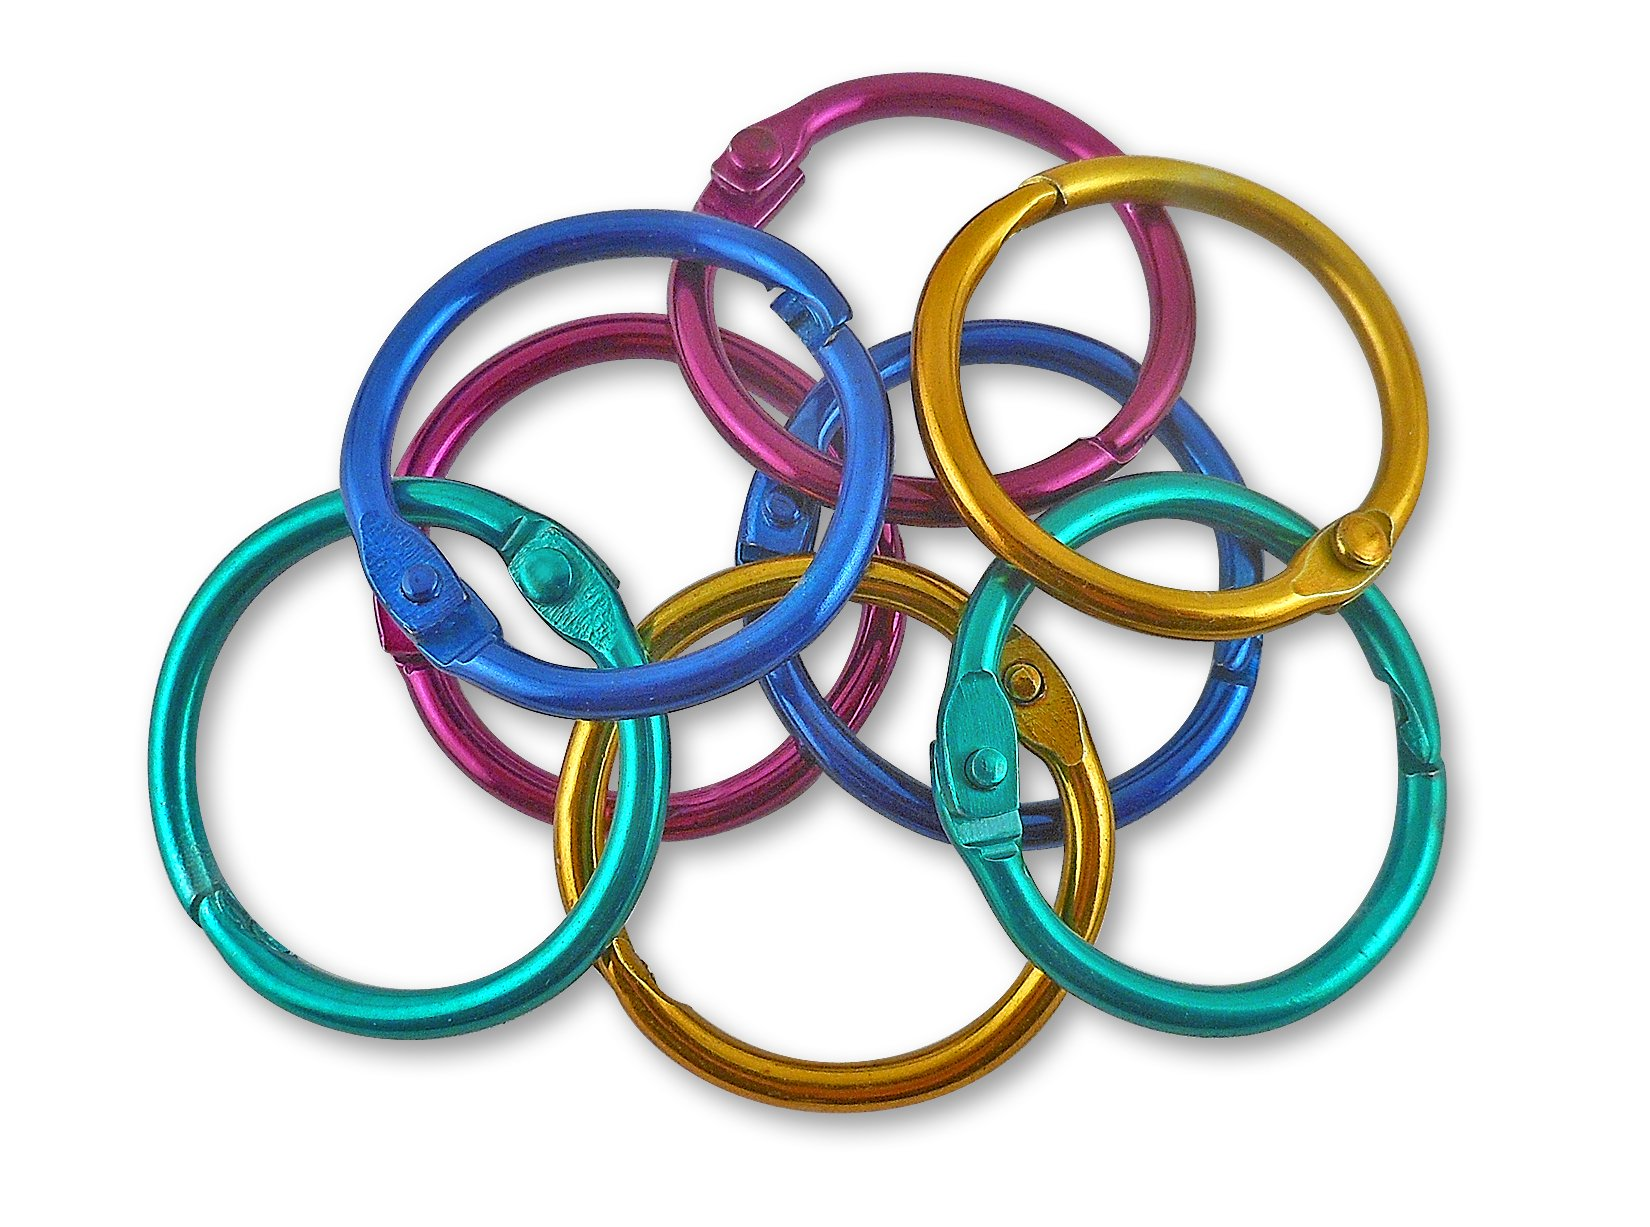 The Classics 1-Inch Diameter 50 Count Book Rings In Assorted Bright Colors (T.. 4